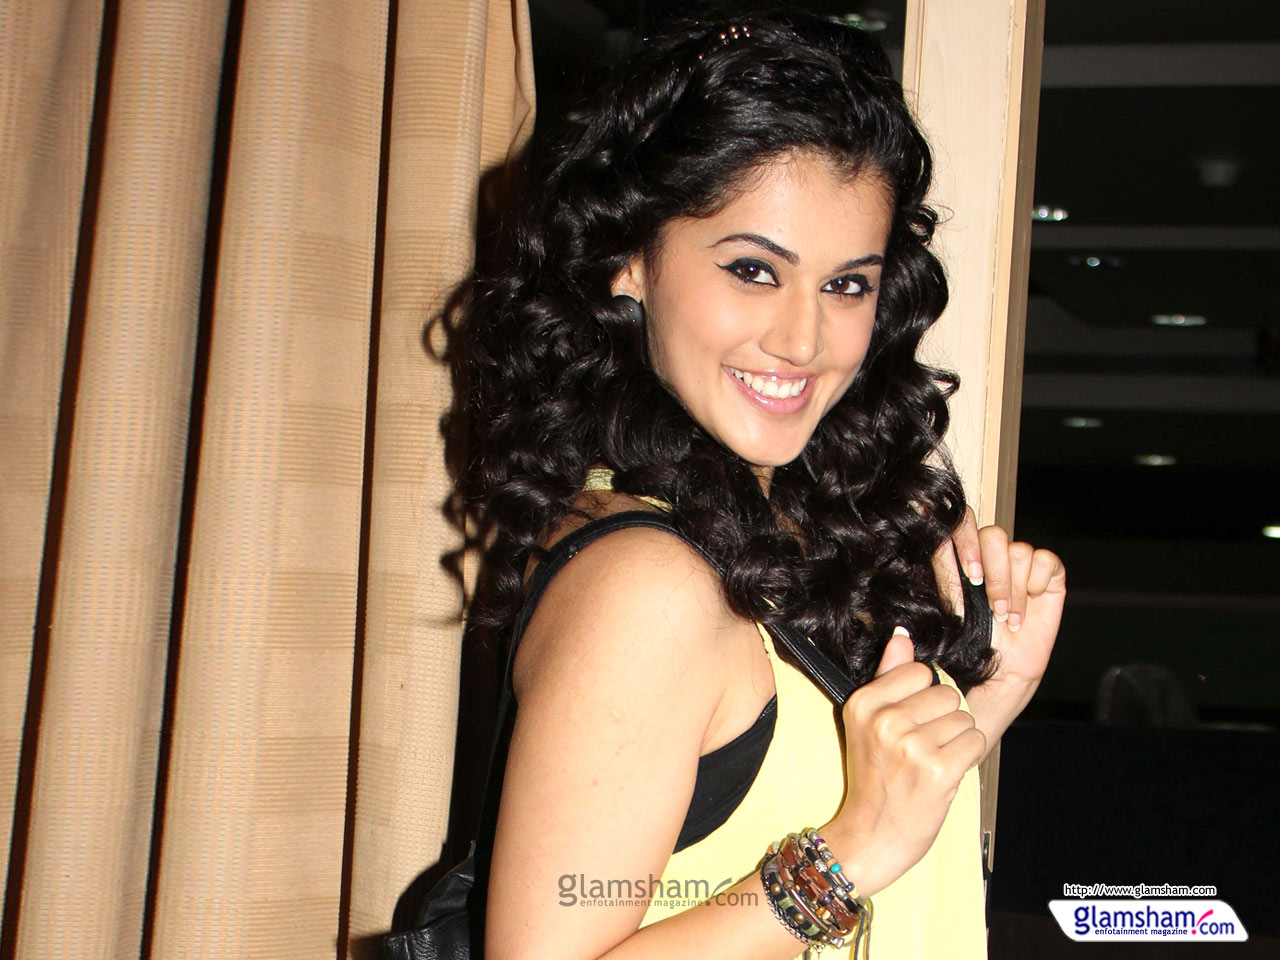 1280x960 - Tapsee pannu Wallpapers 7